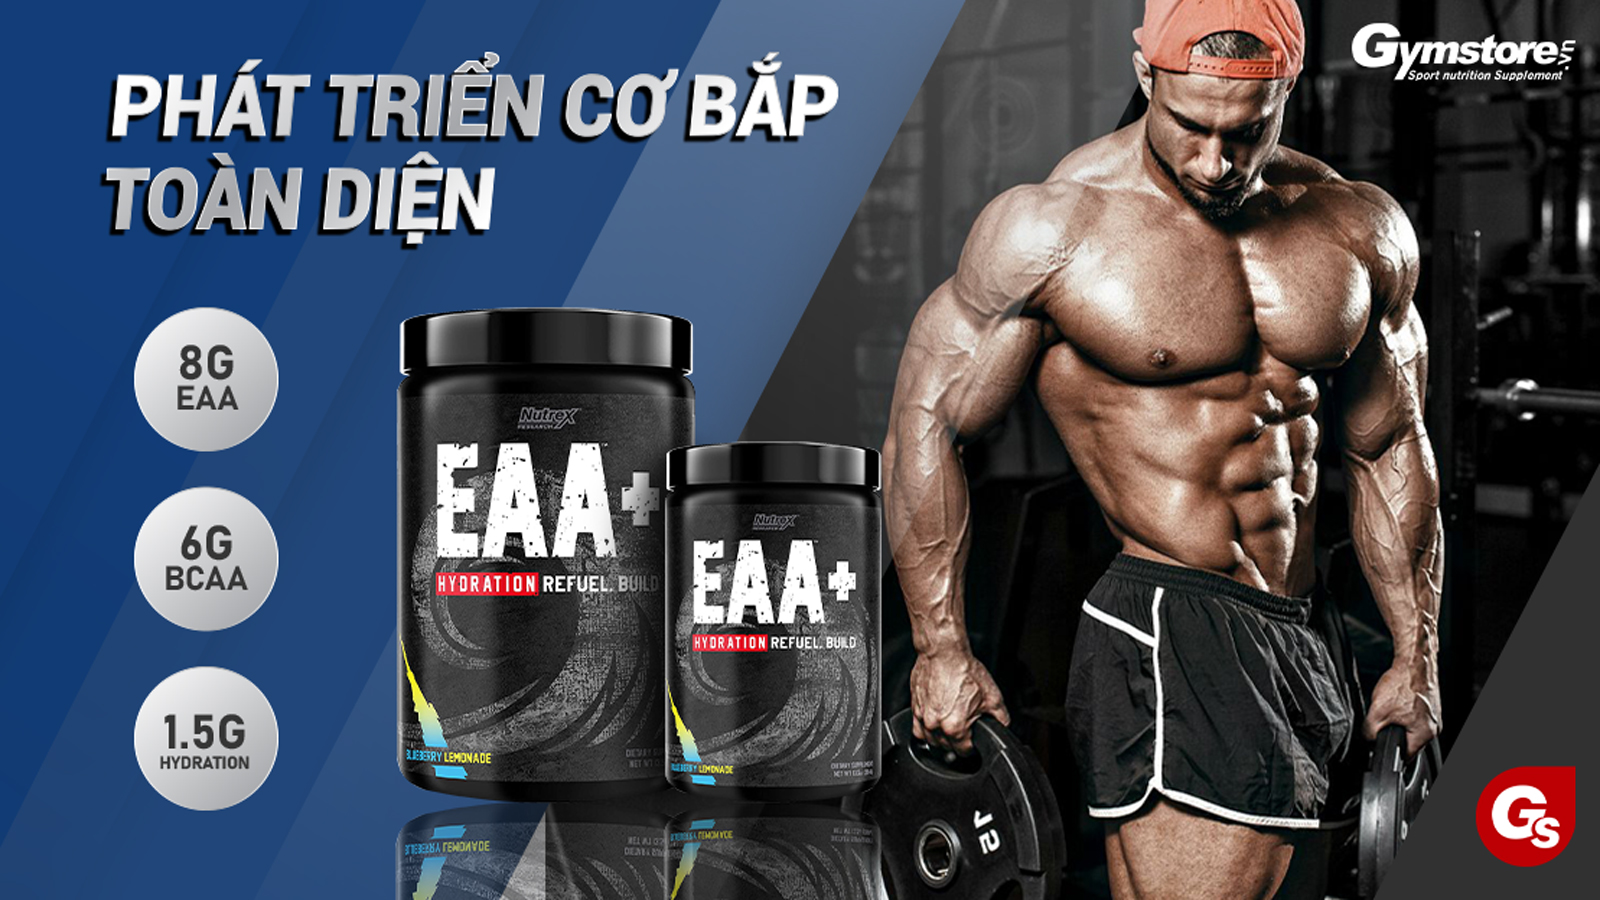 Nutrex-EAA-tong-hop-protein-phat-trien-co-bap-gymstore